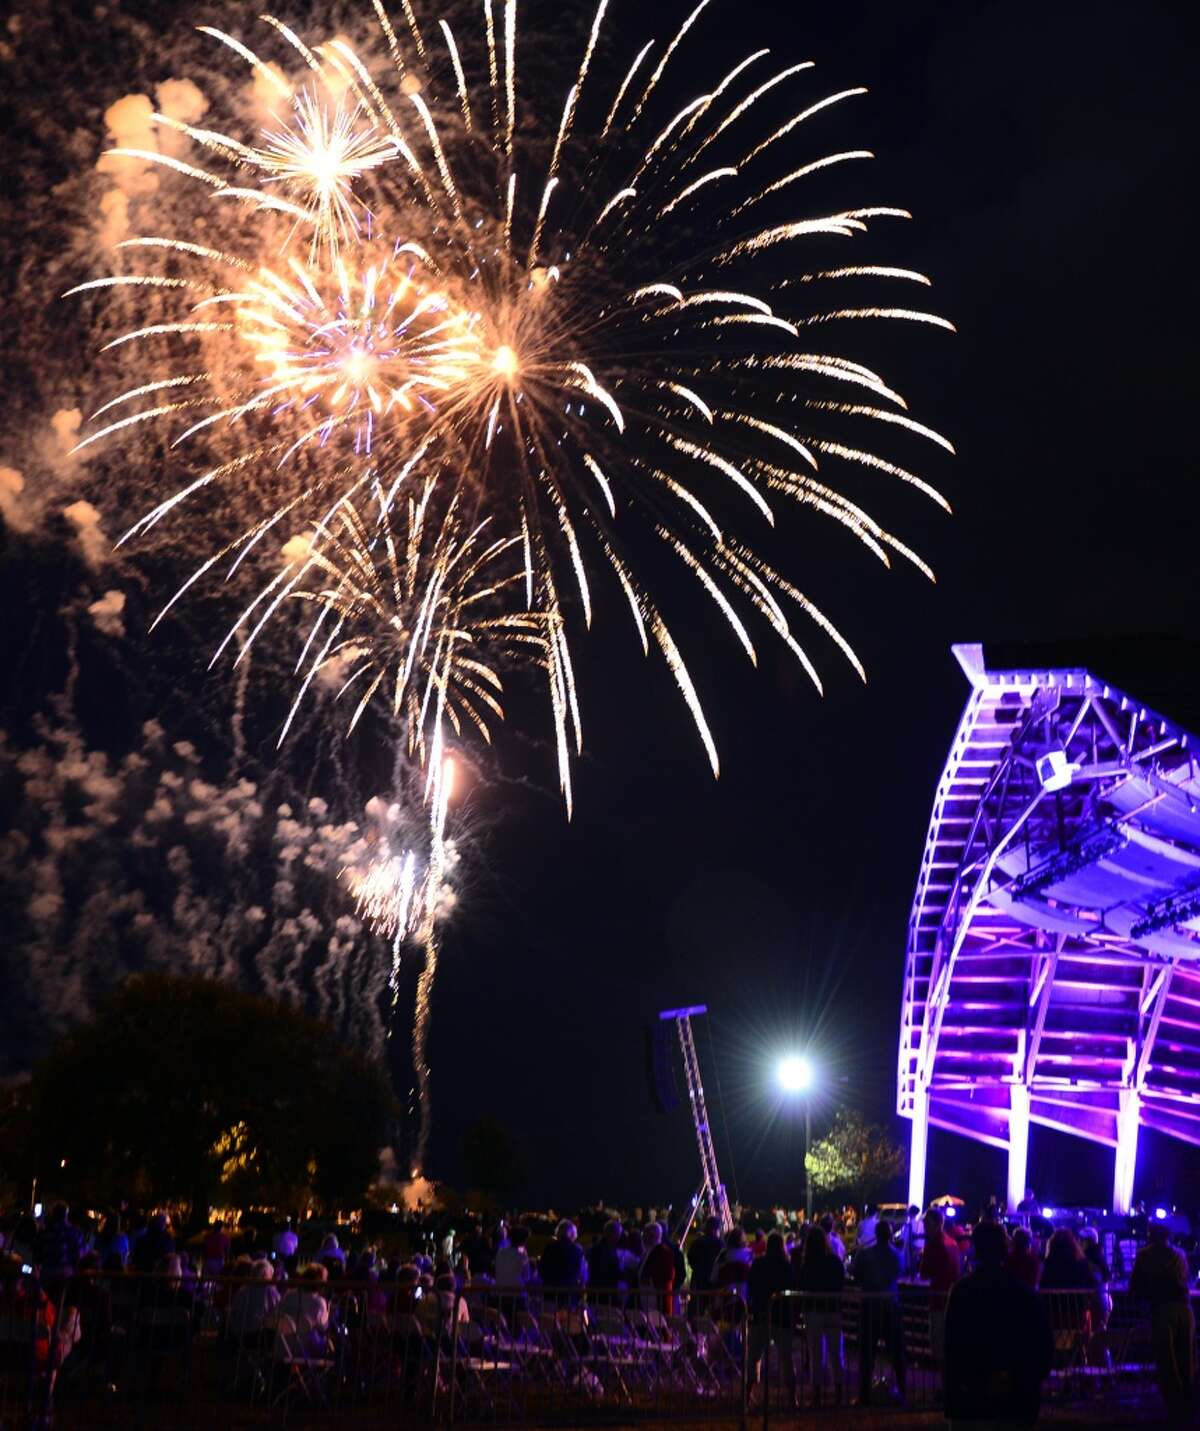 Bridgeport Barnumpalooza fireworks cancelled